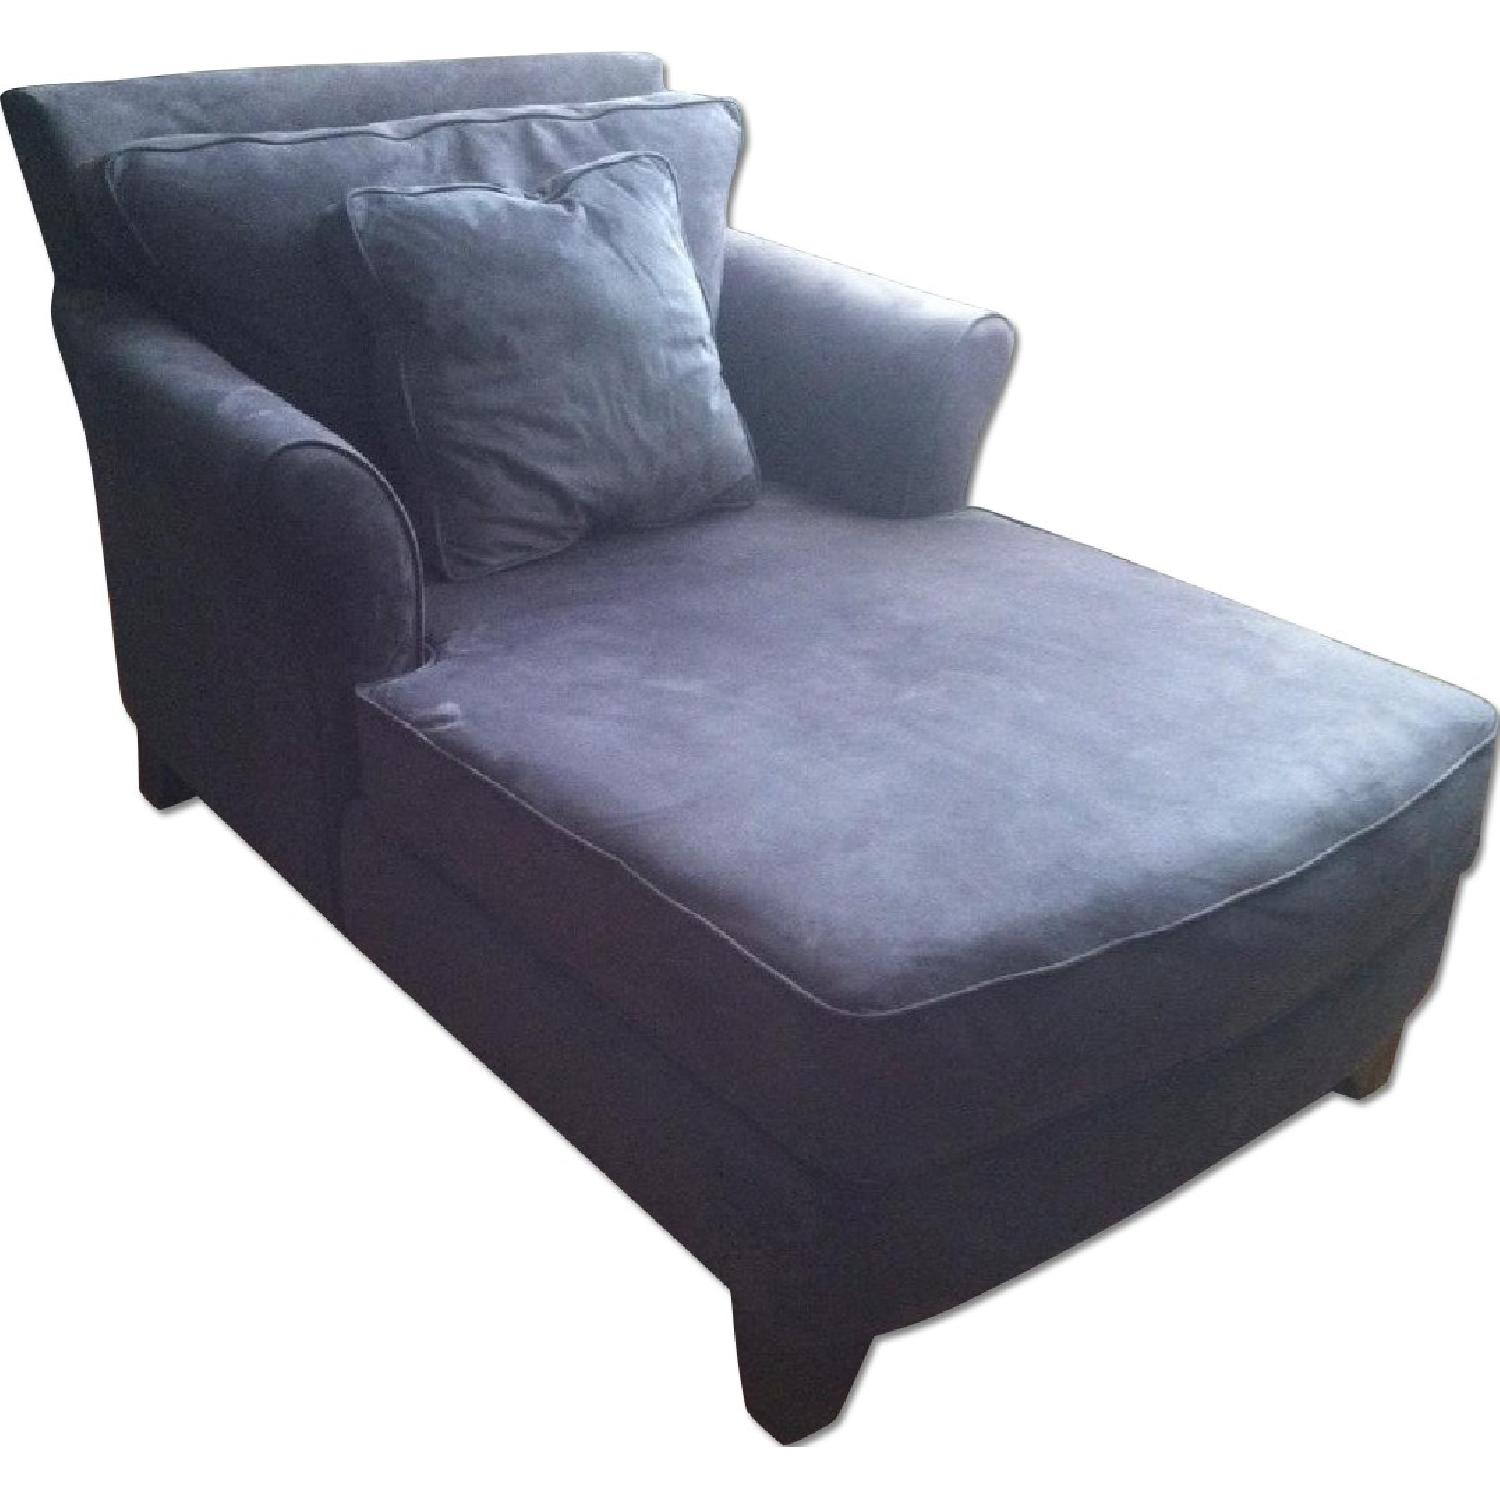 Used sofas for sale in nyc aptdeco for Blue chaise lounge